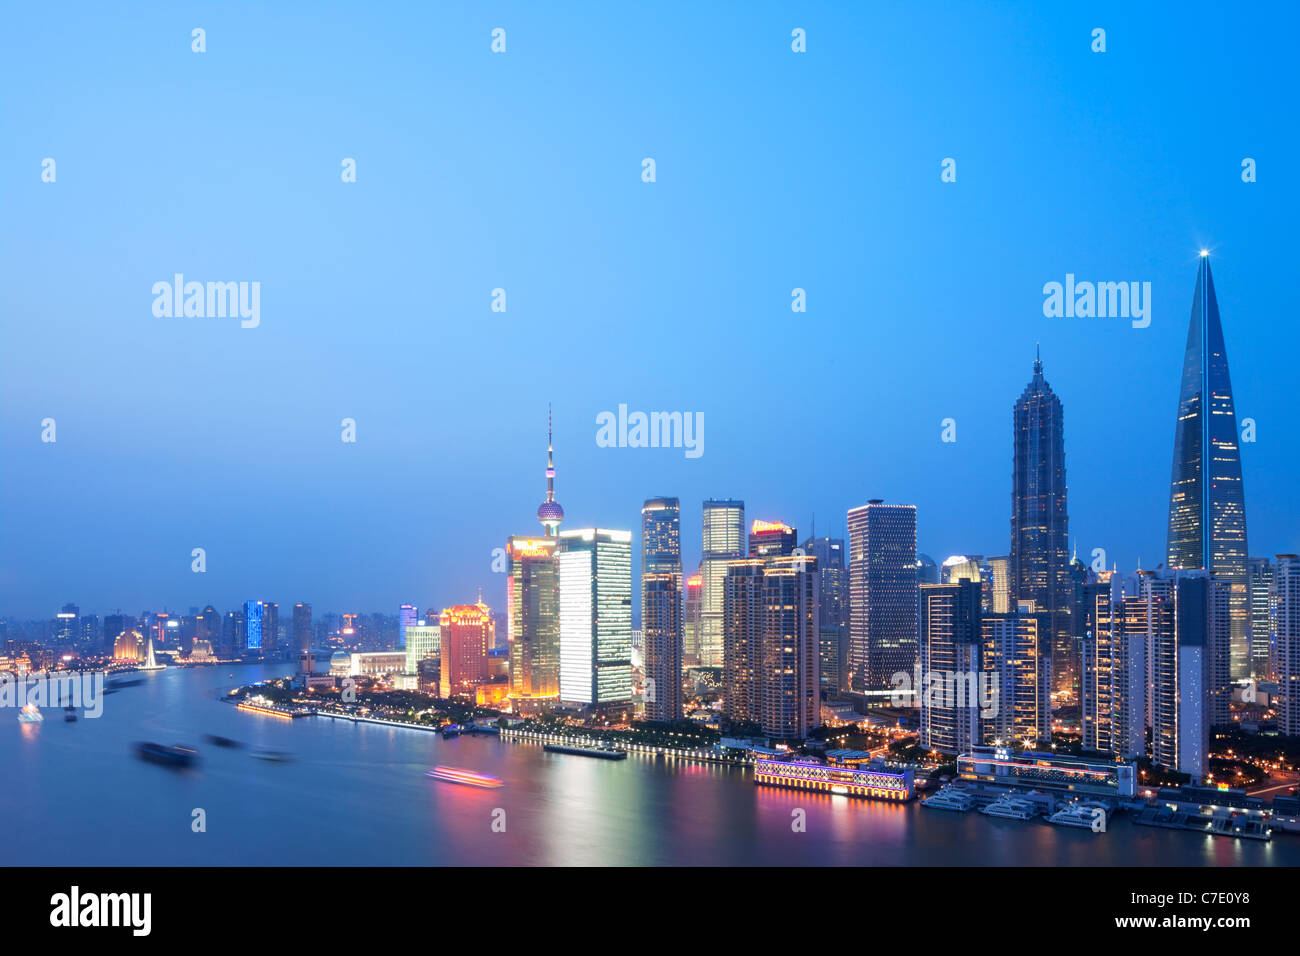 Au crépuscule de Pudong, Shanghai, Chine Photo Stock